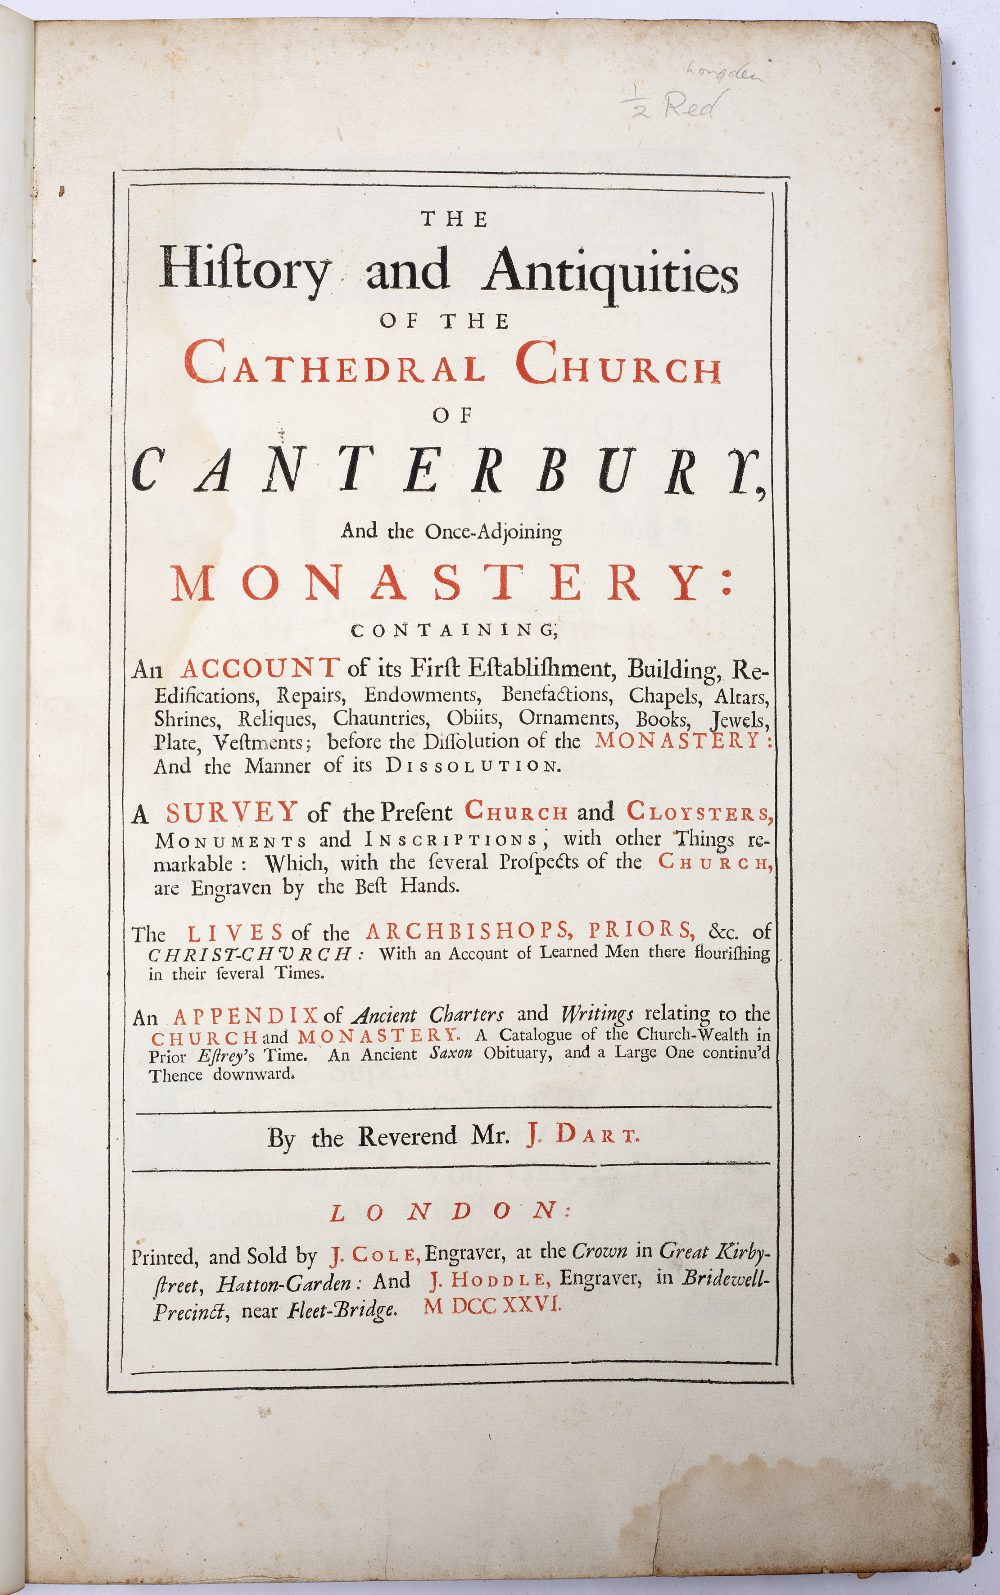 DART, Rev. Mr J. The History and Antiquities of the Cathedral Church of Canterbury with multiple